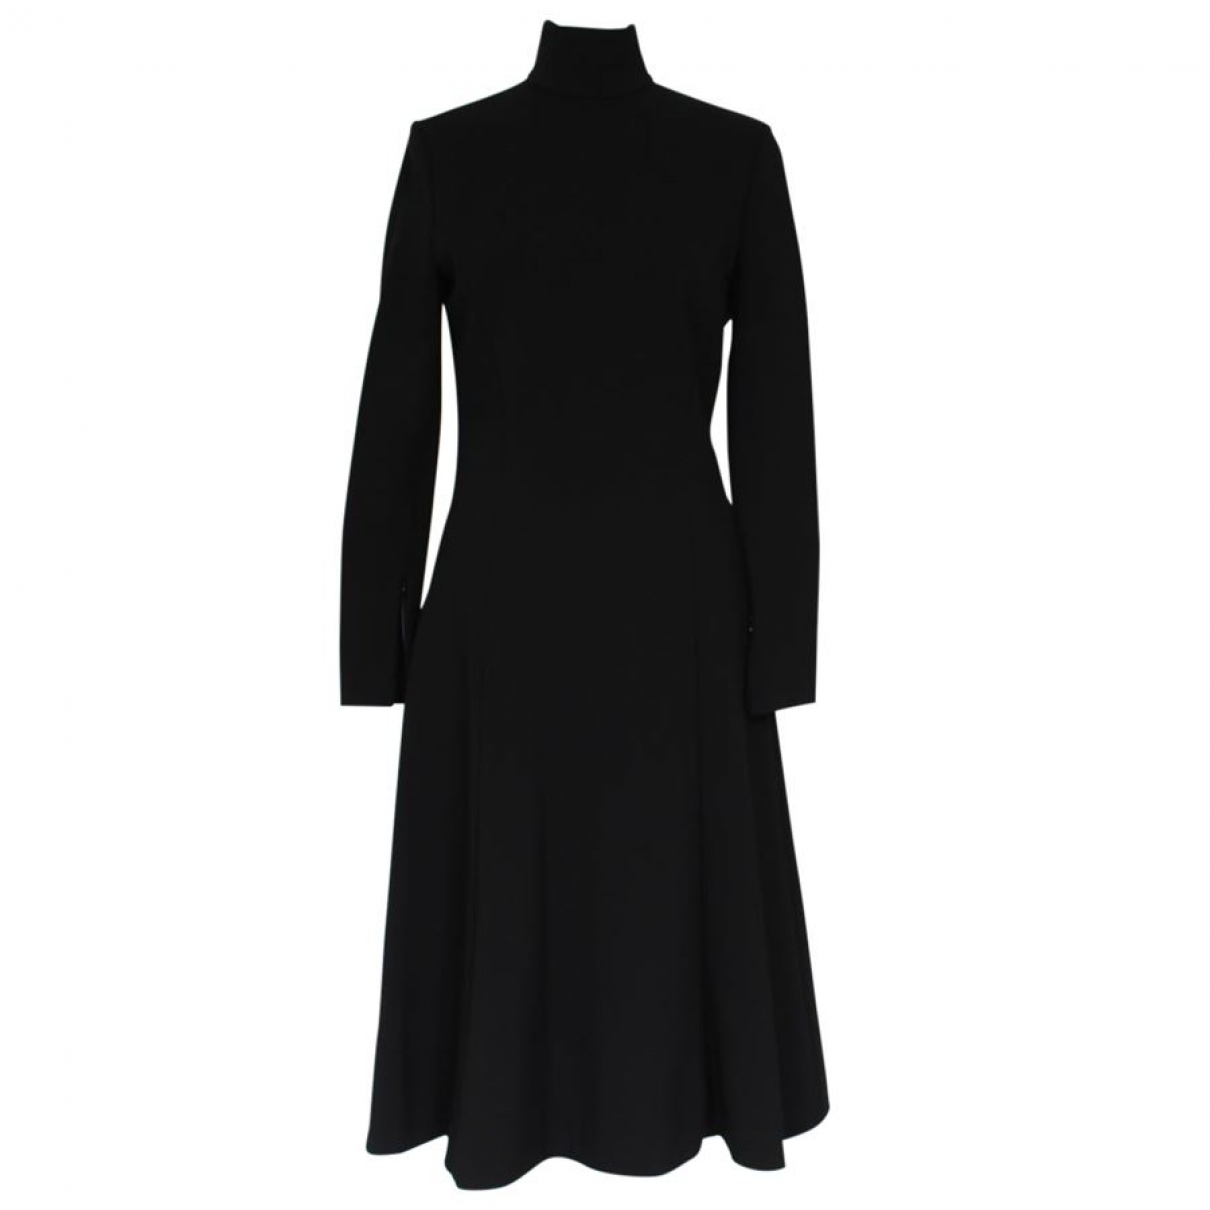 Ralph Lauren \N Black dress for Women 44 IT